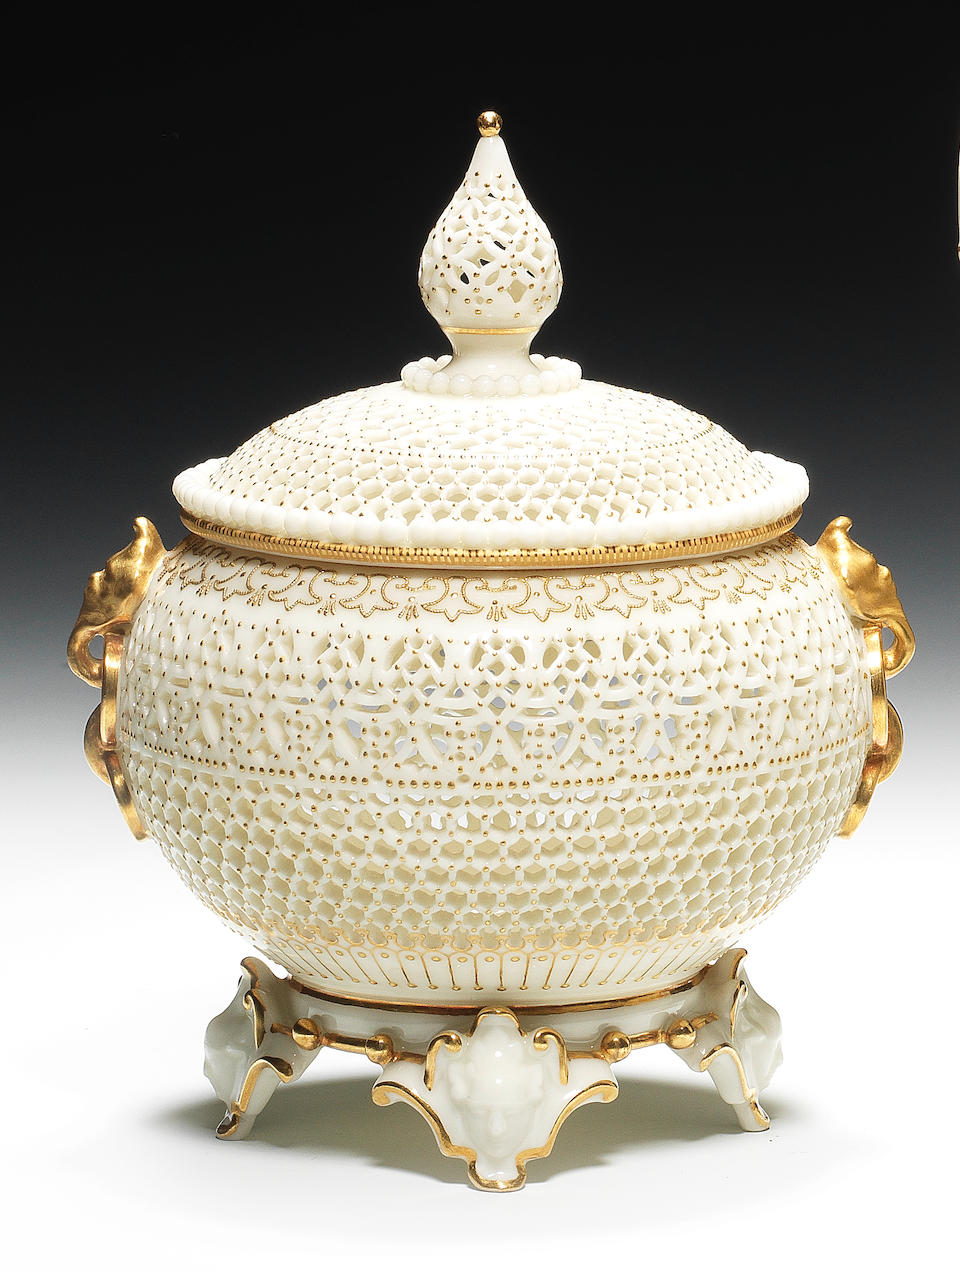 A fine Royal Worcester reticulated vase and cover by George Owen, dated 1913